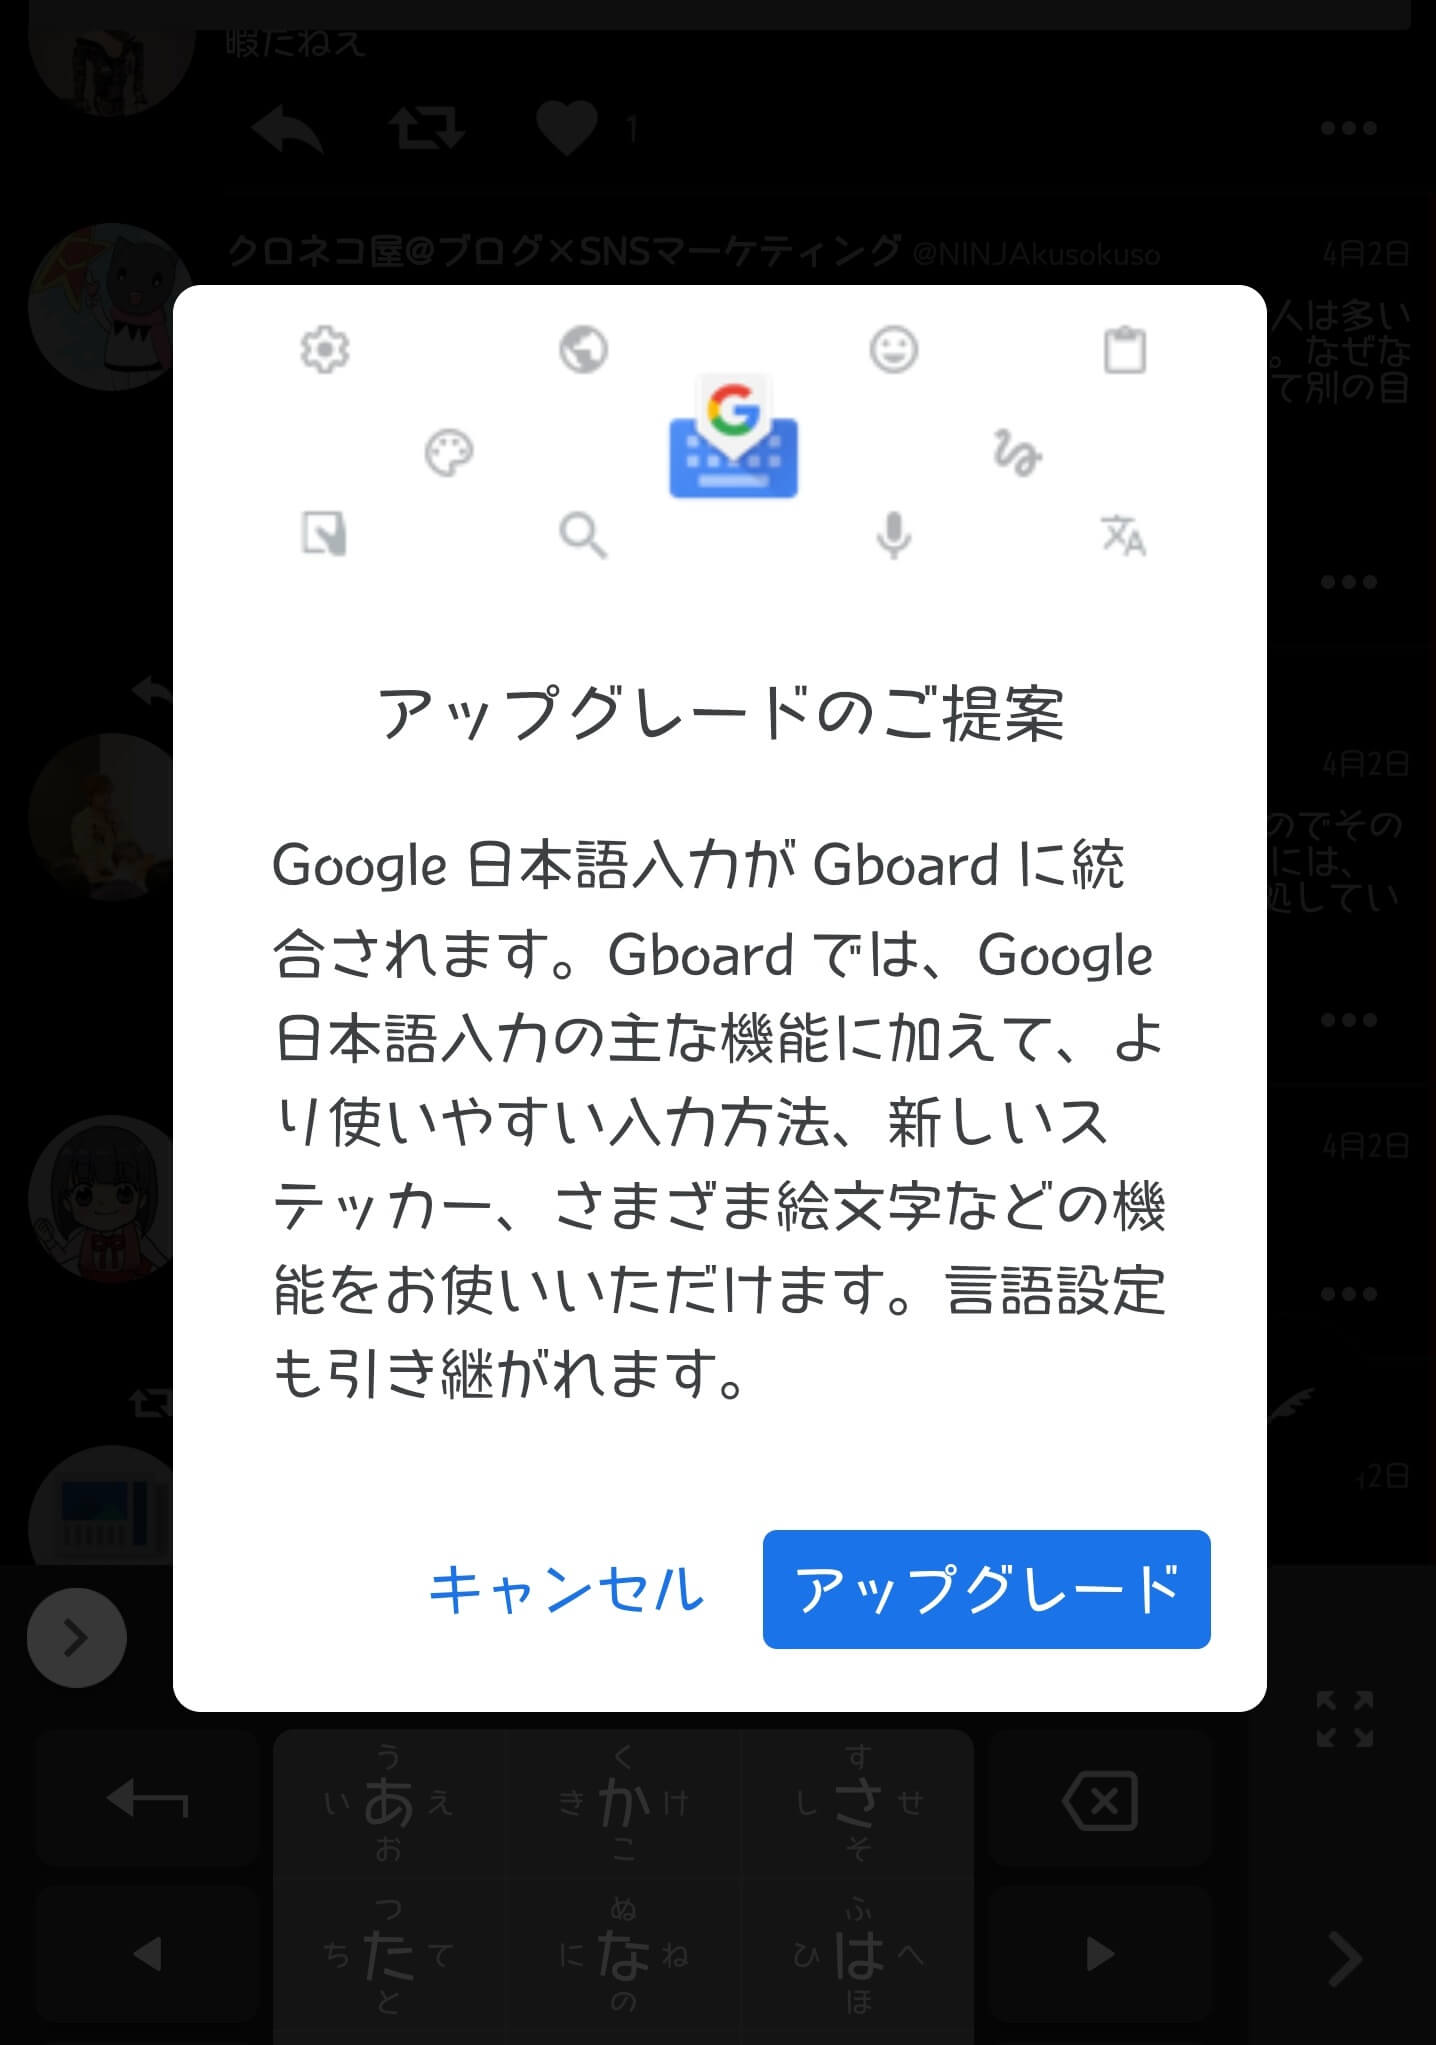 Gboard-upgrade-popup